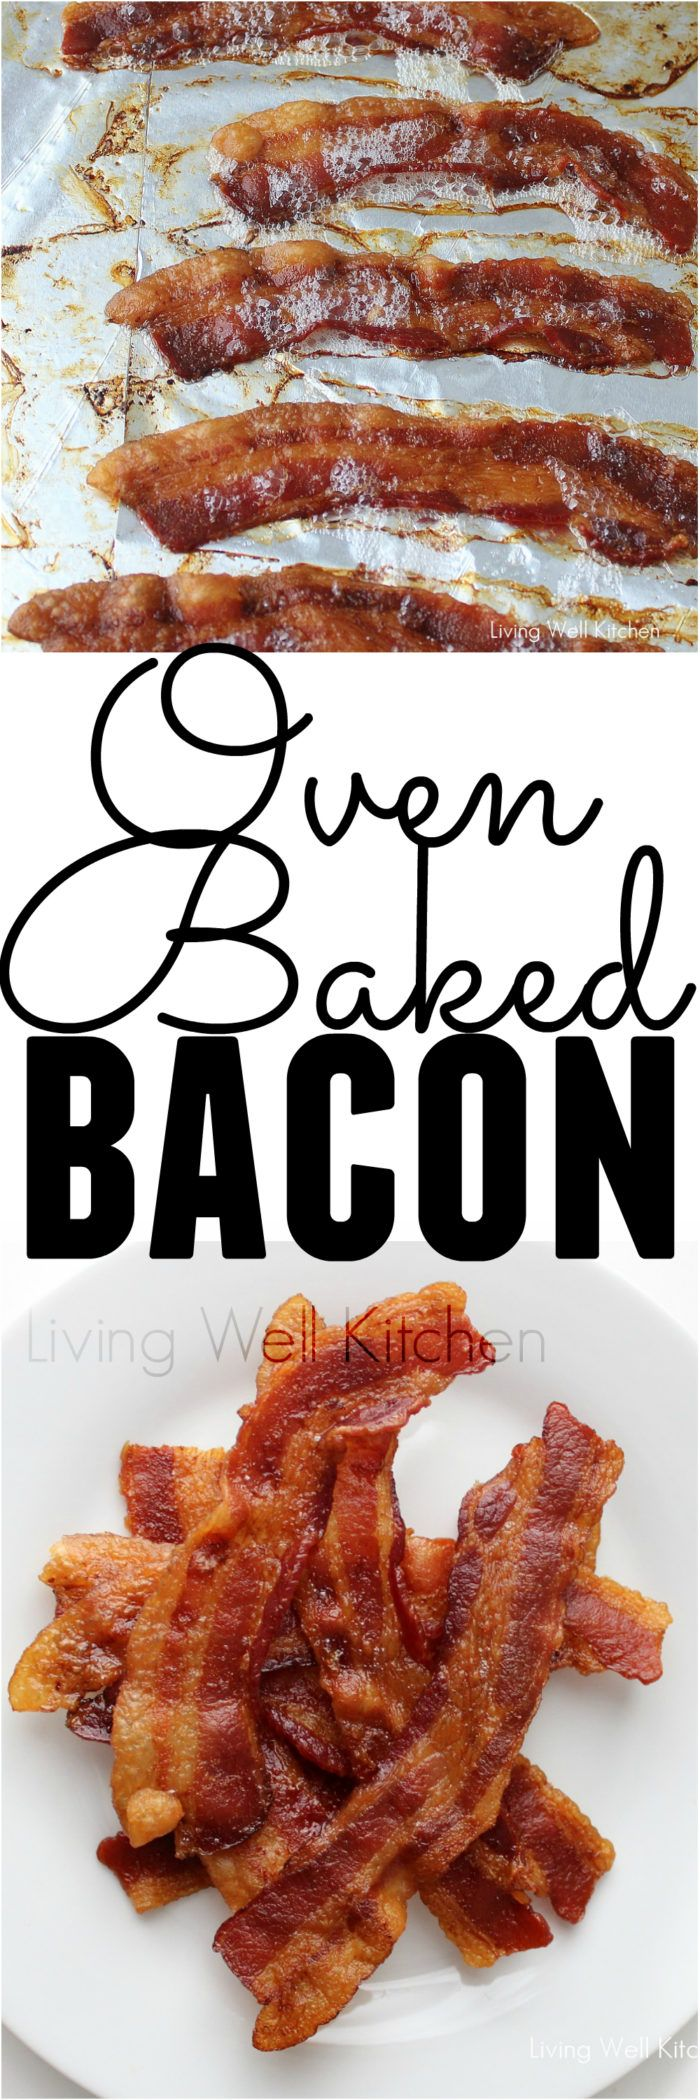 Best 25 oven baked bacon ideas on pinterest oven bacon baked cooking bacon in the oven is much easier and not nearly as messy or painful ccuart Gallery